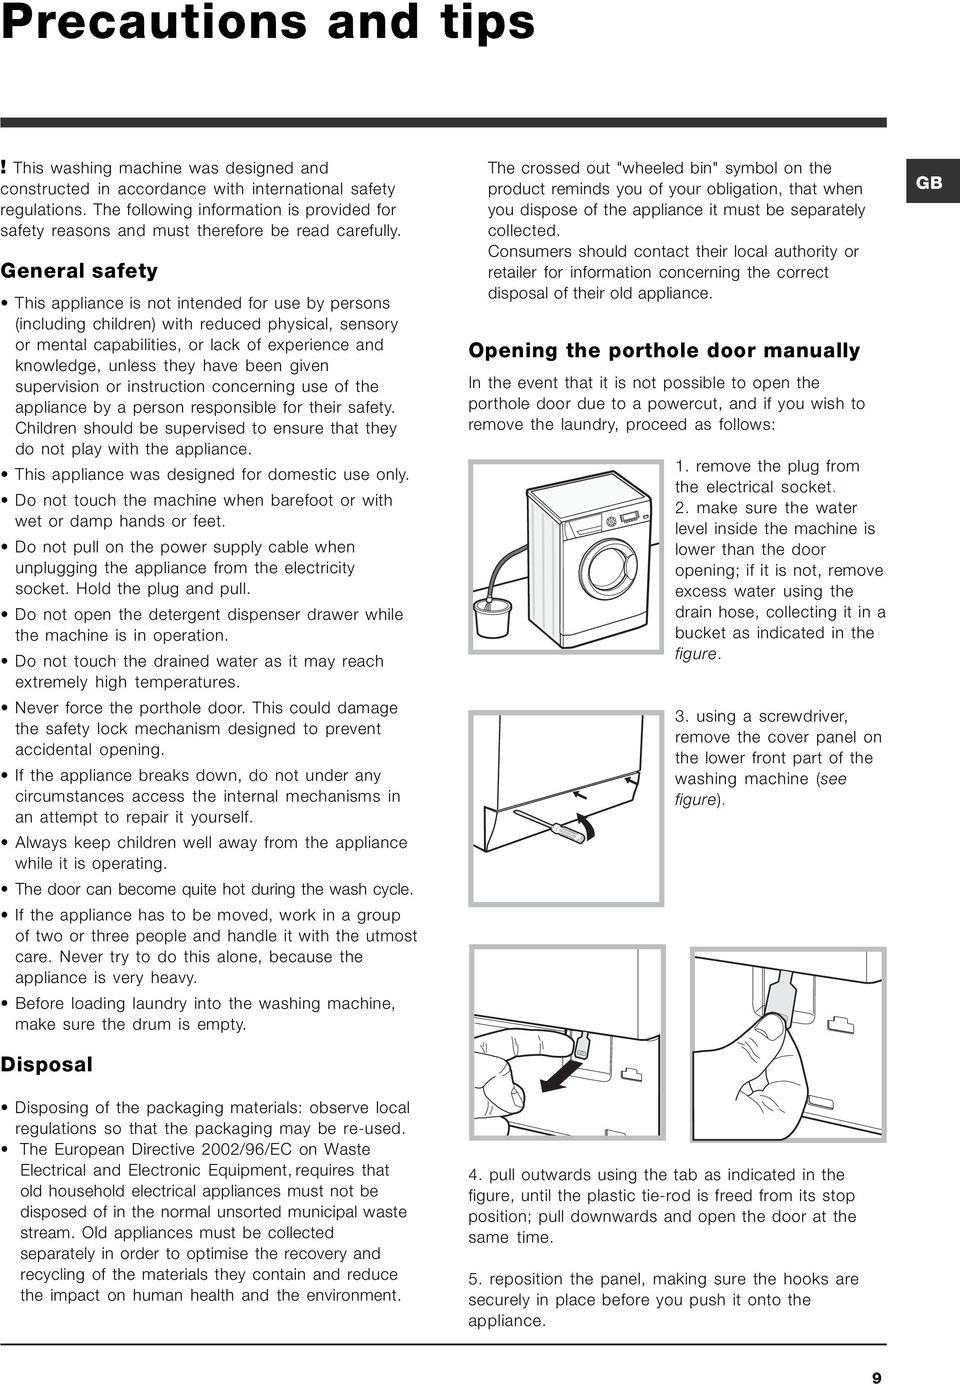 General safety This appliance is not intended for use by persons (including children) with reduced physical, sensory or mental capabilities, or lack of experience and knowledge, unless they have been